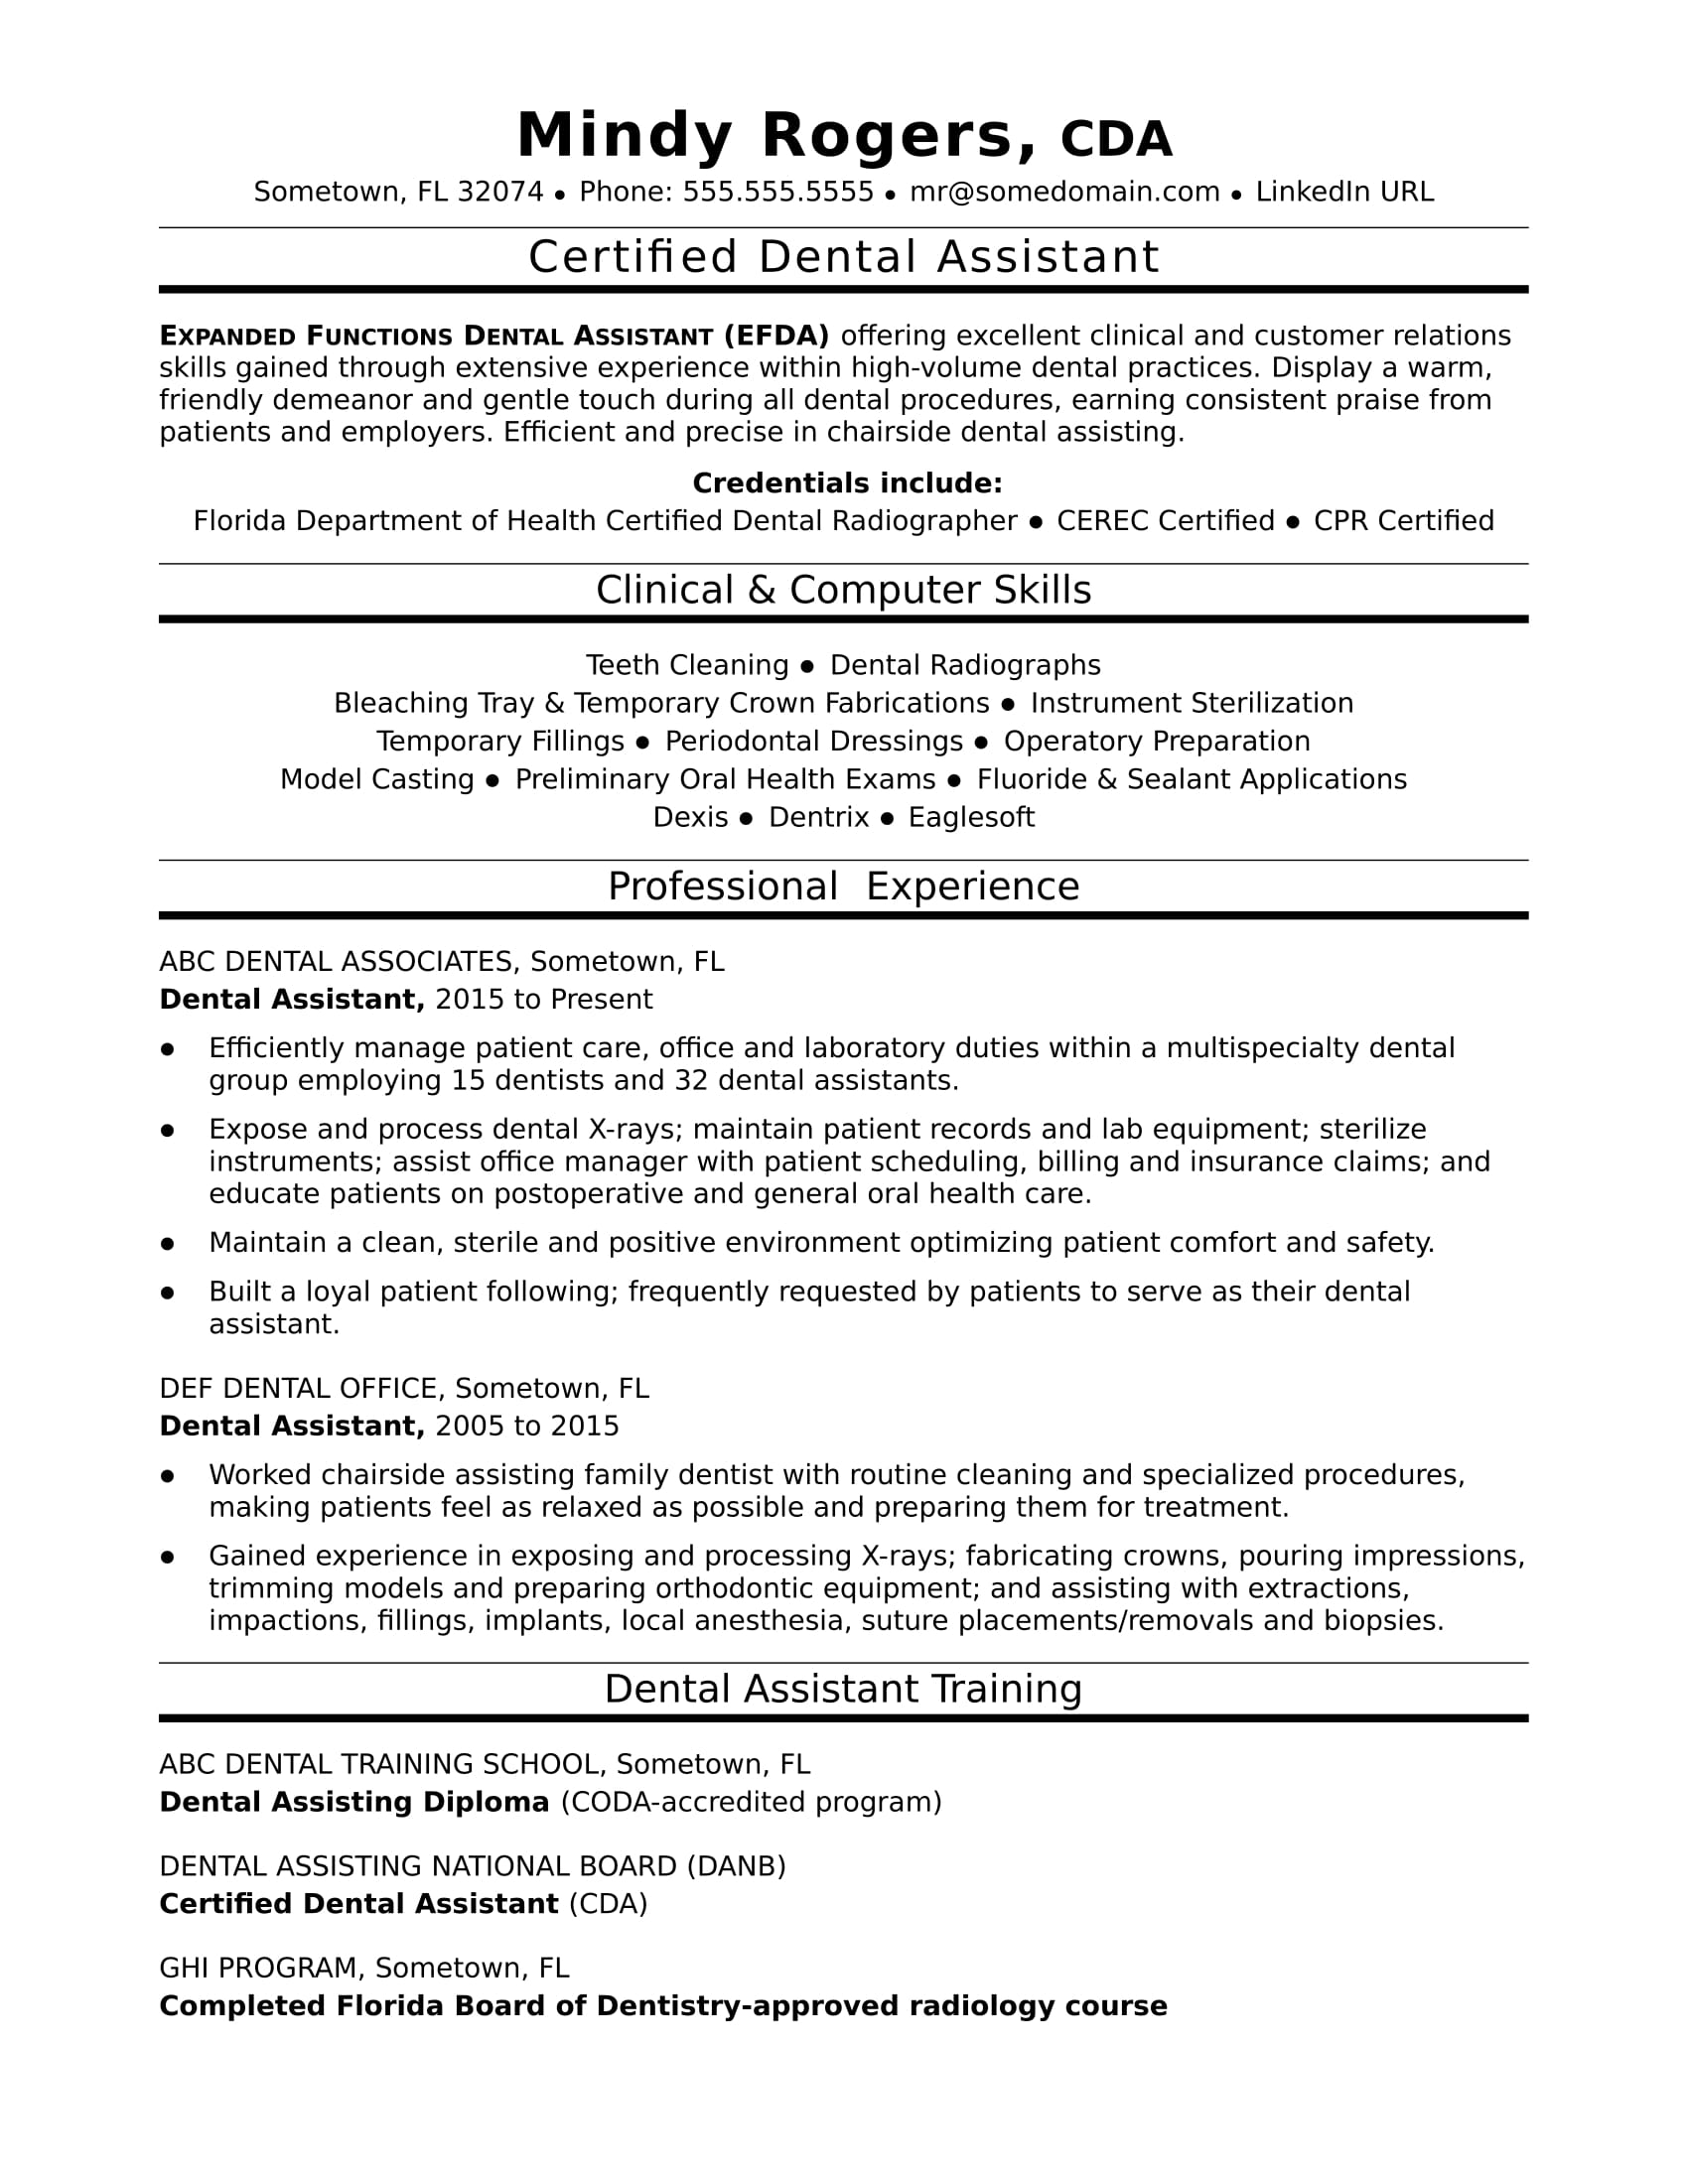 Dental Assistant Resume Sample  Making A Professional Resume